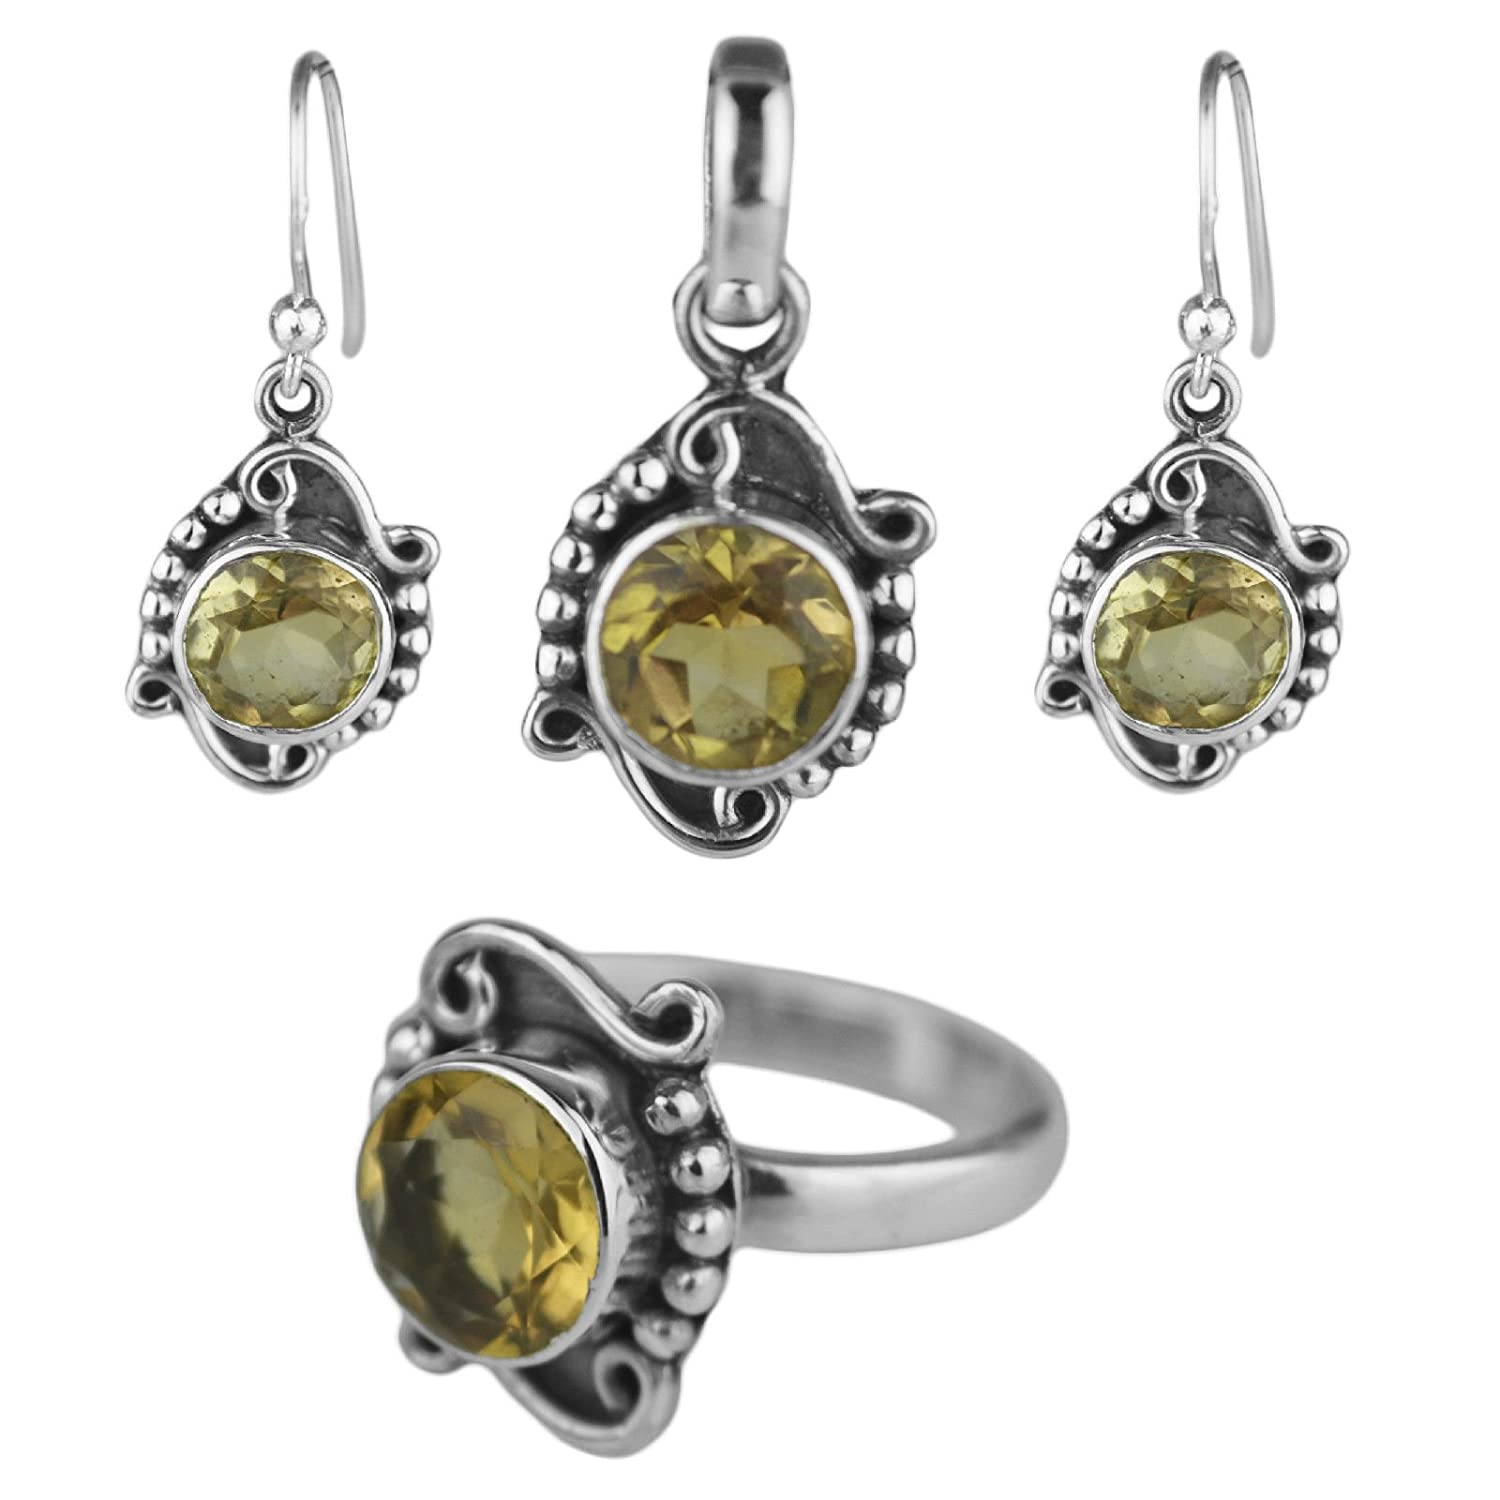 Crystalcraftindia Citrine gemstone jewelry set pendant ring earring sterling silver 9.58 gms c